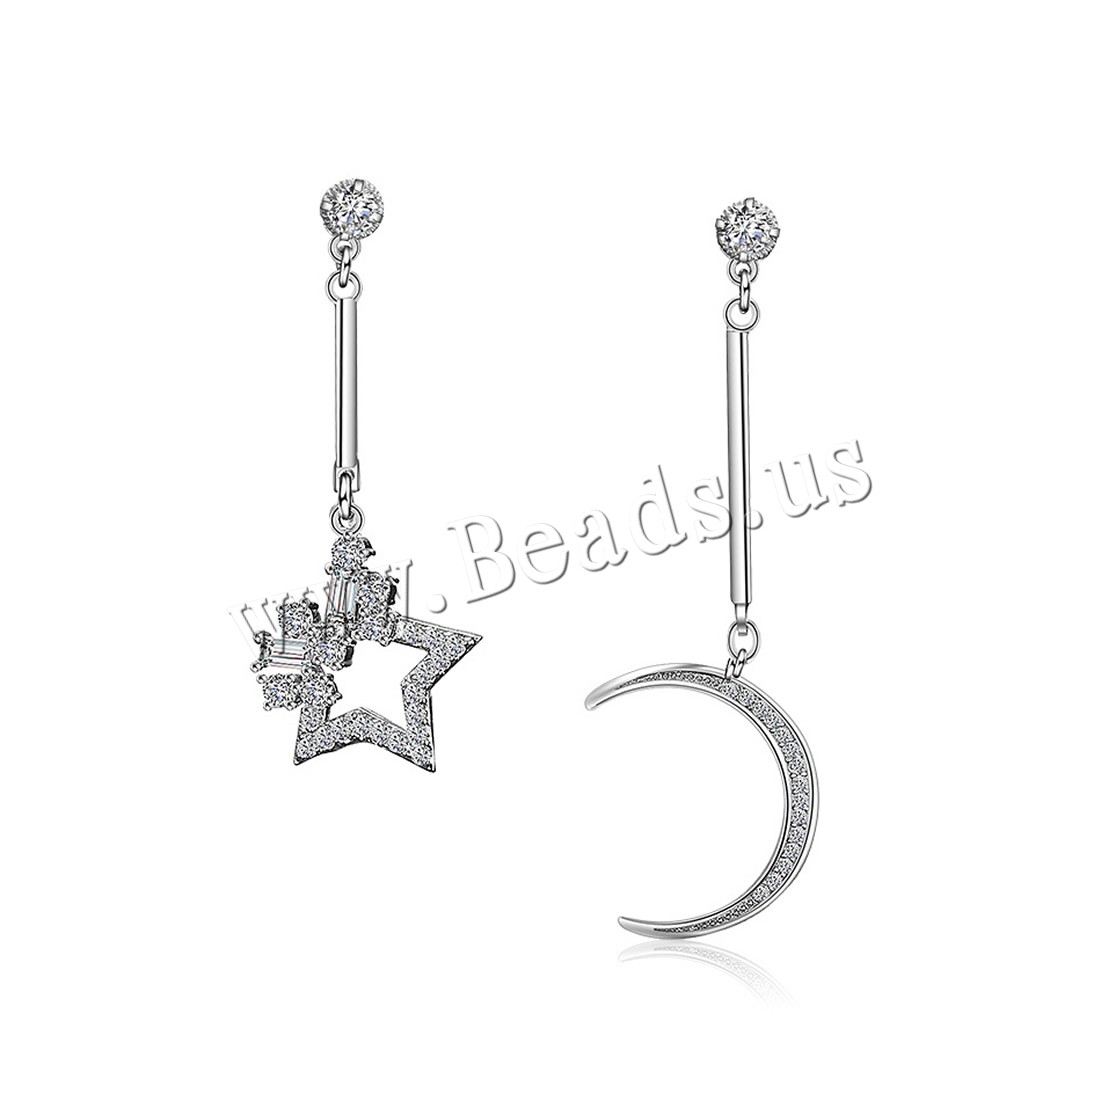 Asymmetric Earrings Brass Moon And Star Platinum Plated For Woman With Cubic Zirconia Nickel